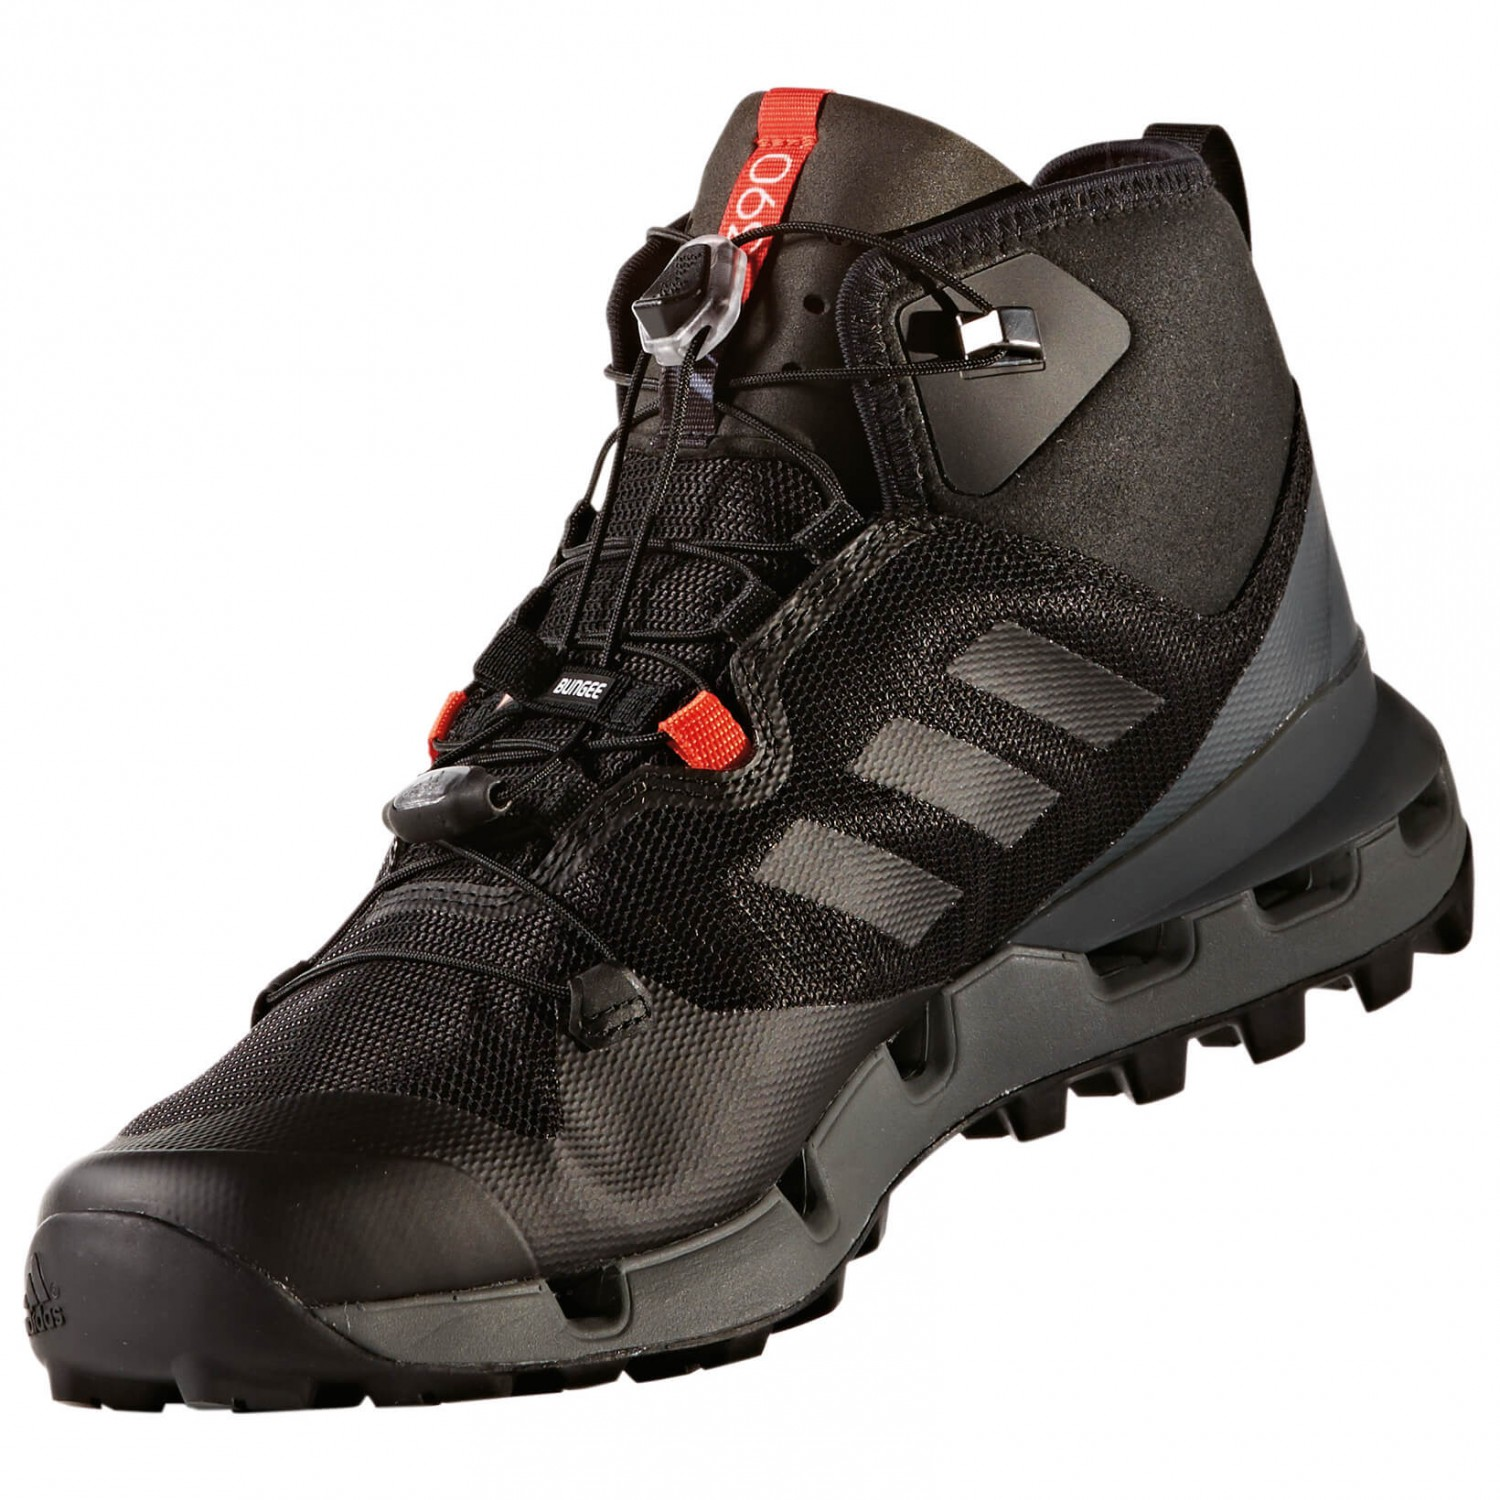 adidas - Terrex Fast Mid GTX-Surround - Walking boots